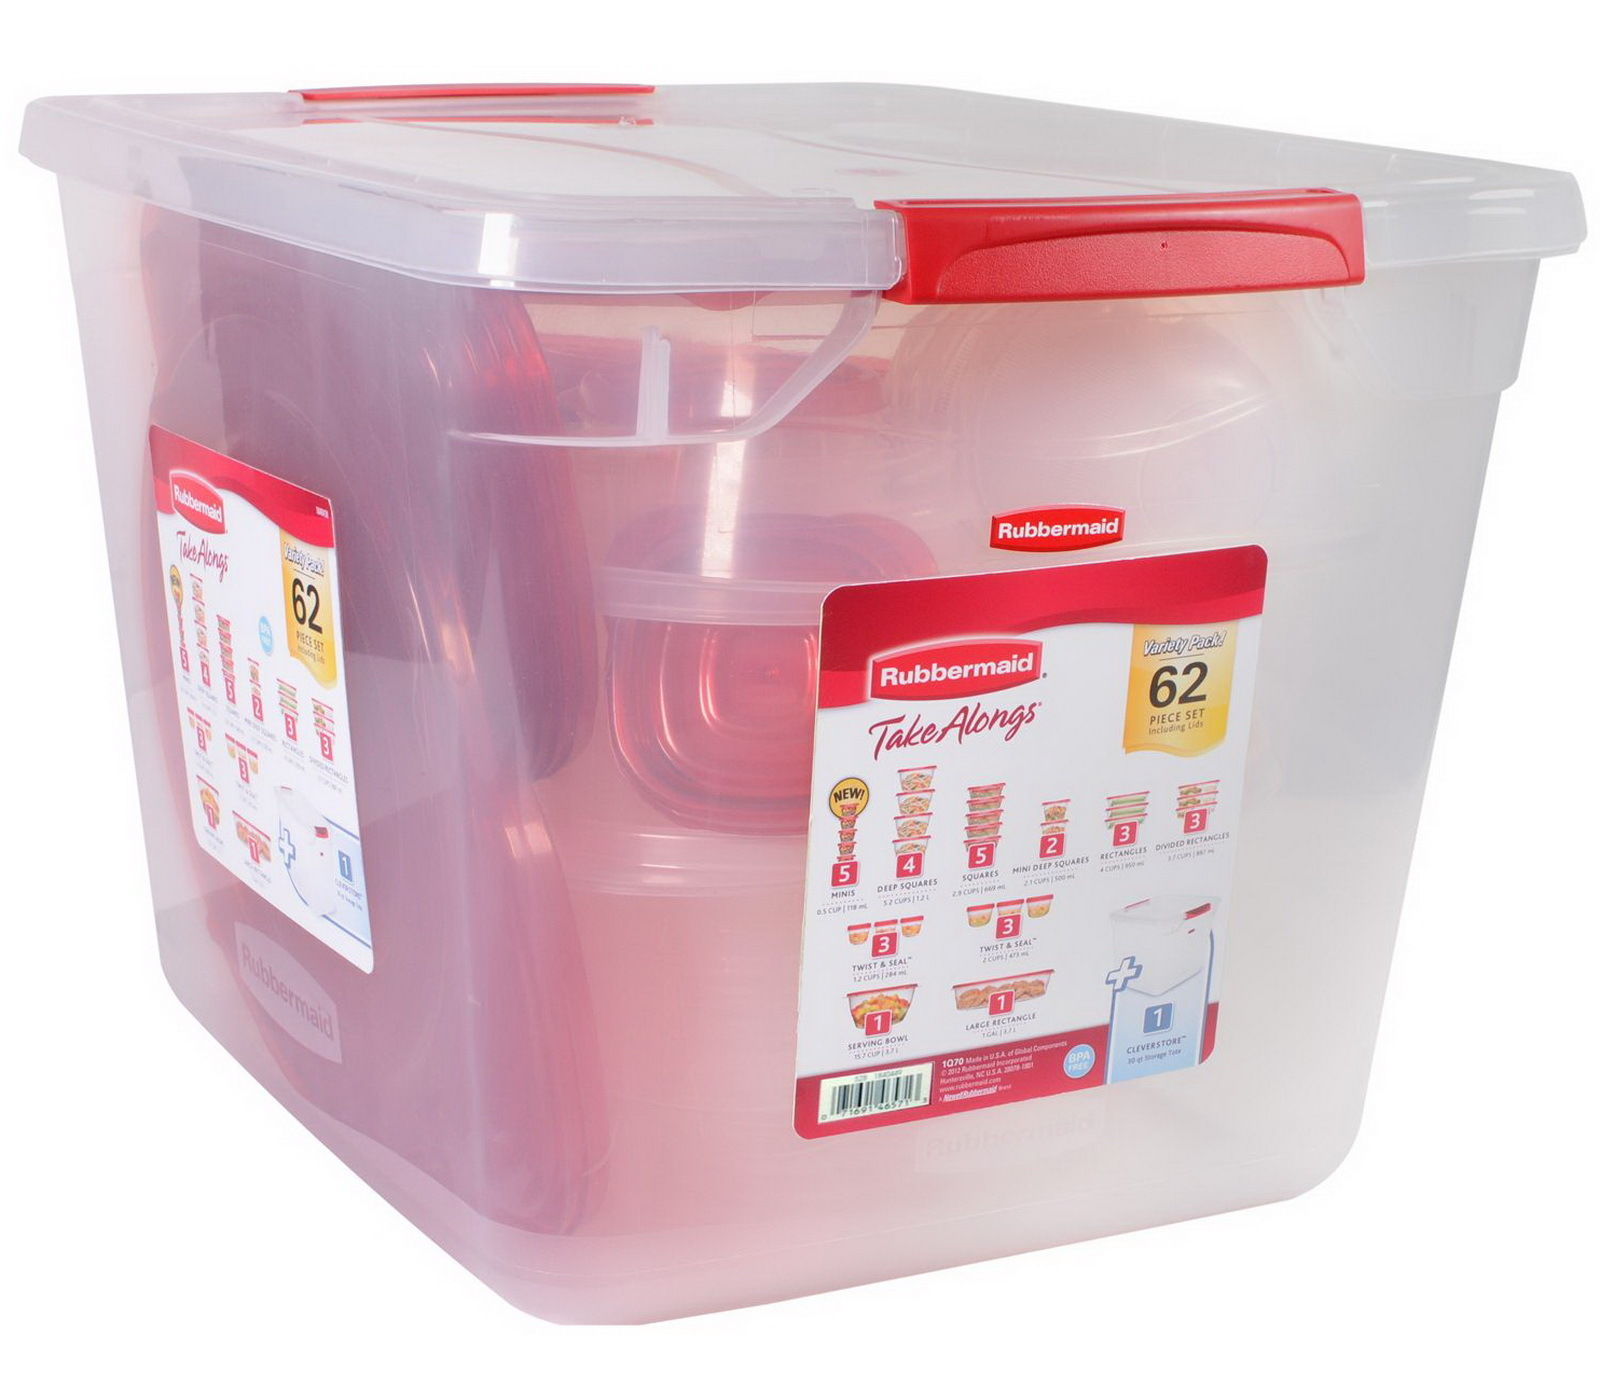 Rubbermaid 62 Piece Food Storage Containers Set TakeAlongs Clear Plastic 1